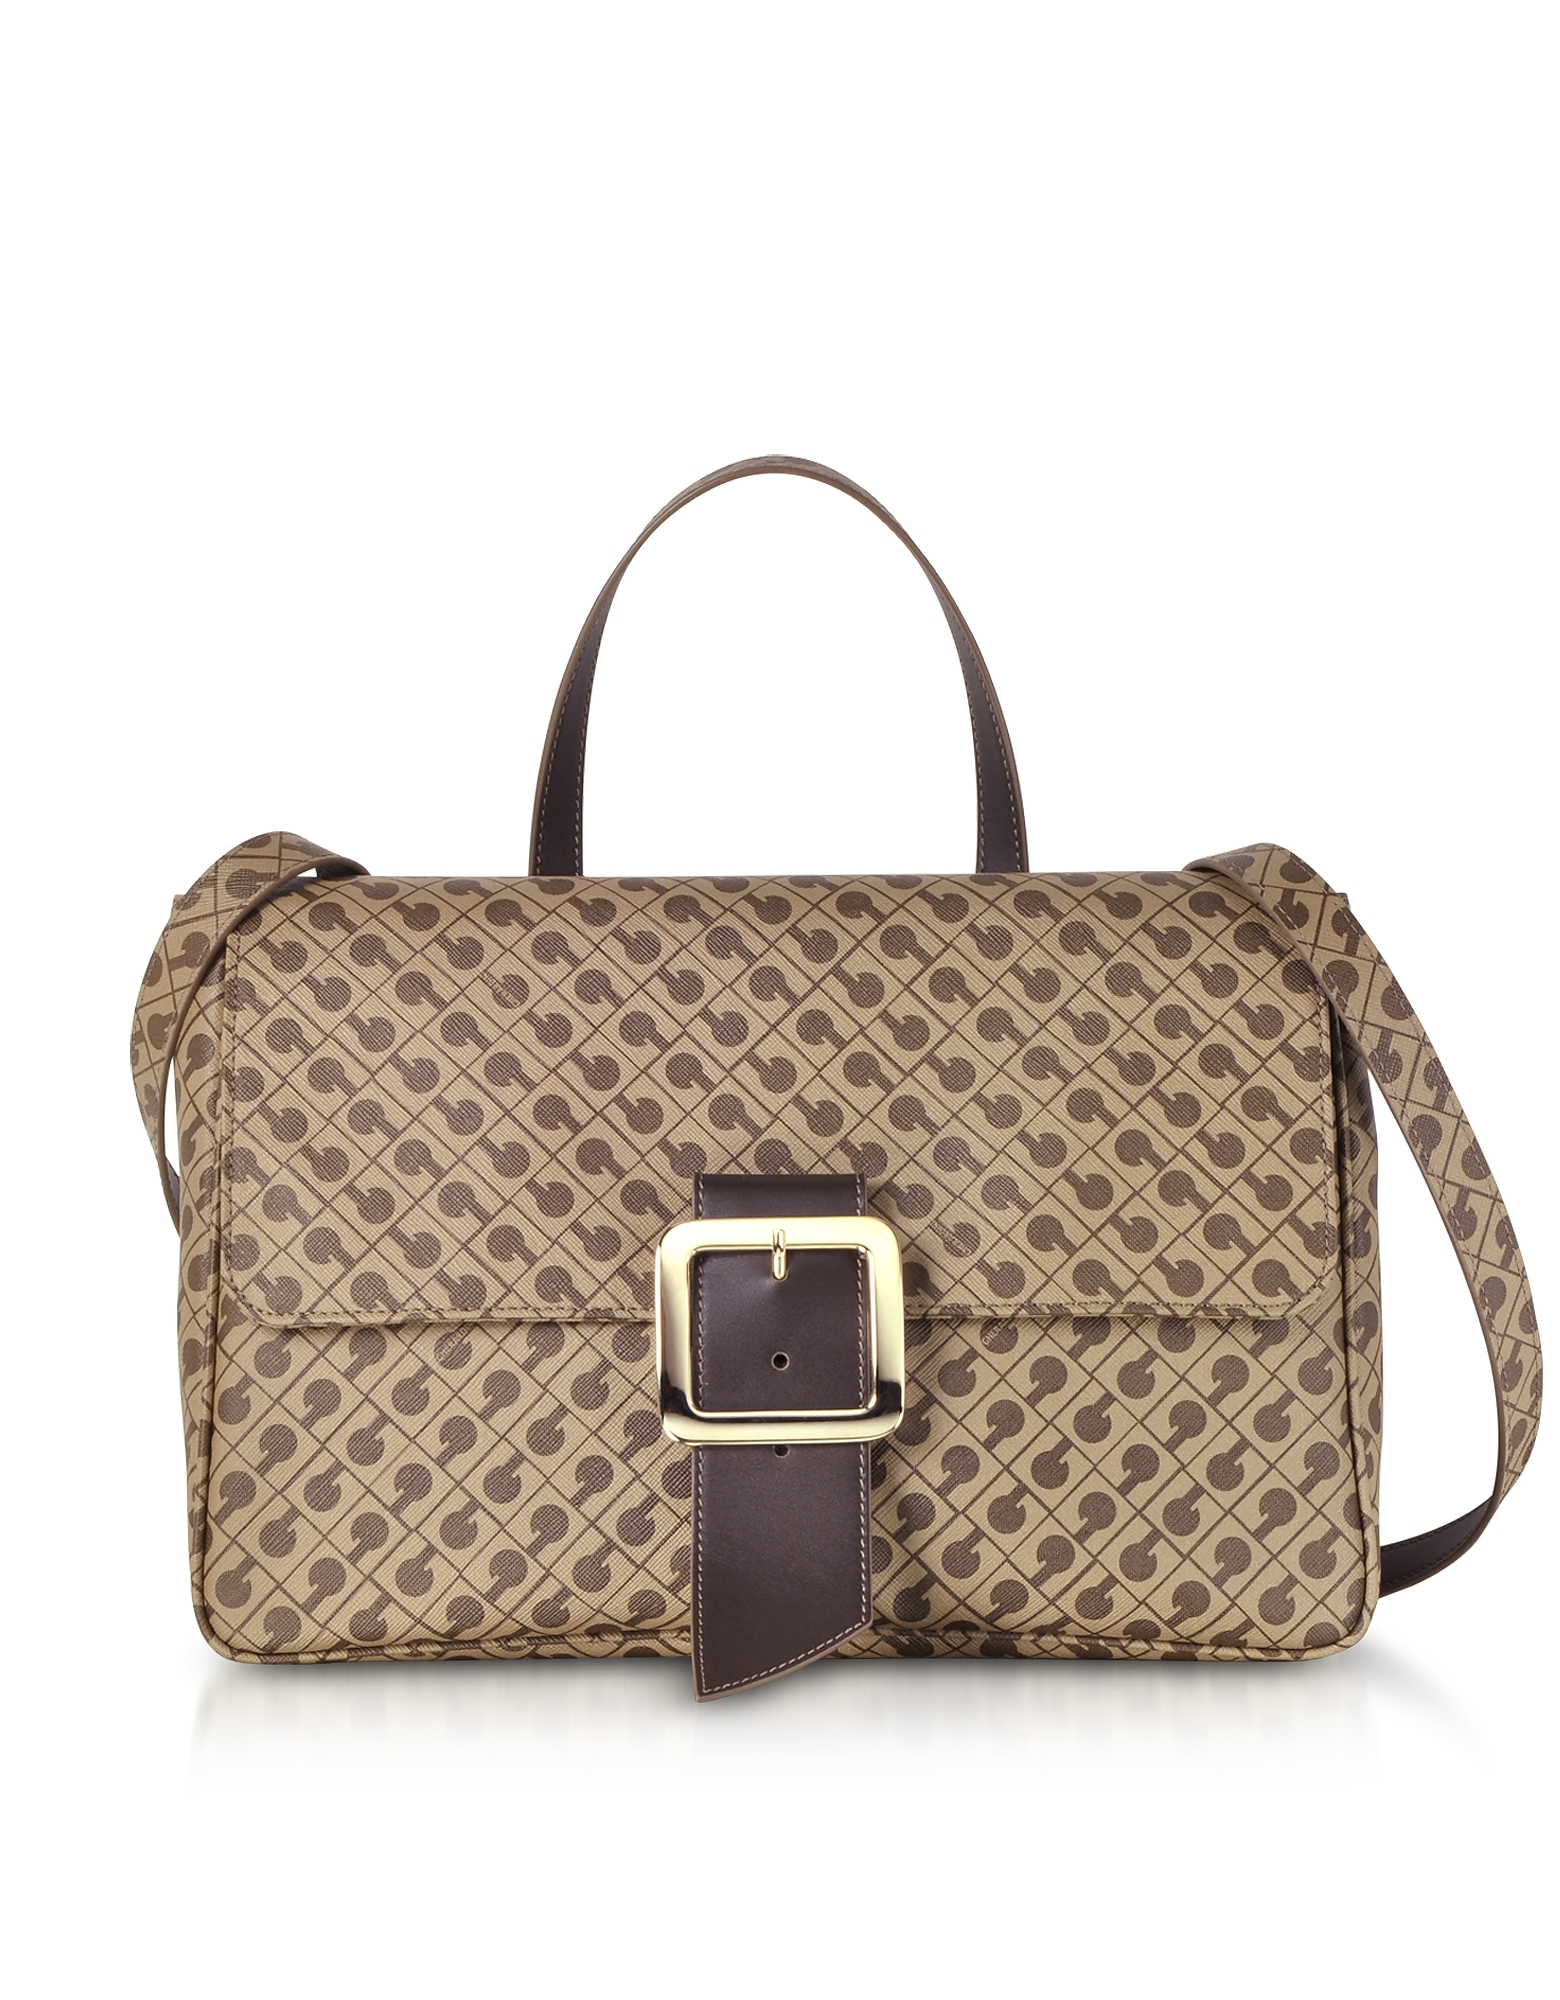 Image of Gherardini Designer Handbags, Koko Signature Saffiano Eco Leather Top-Handle Stachel Bag